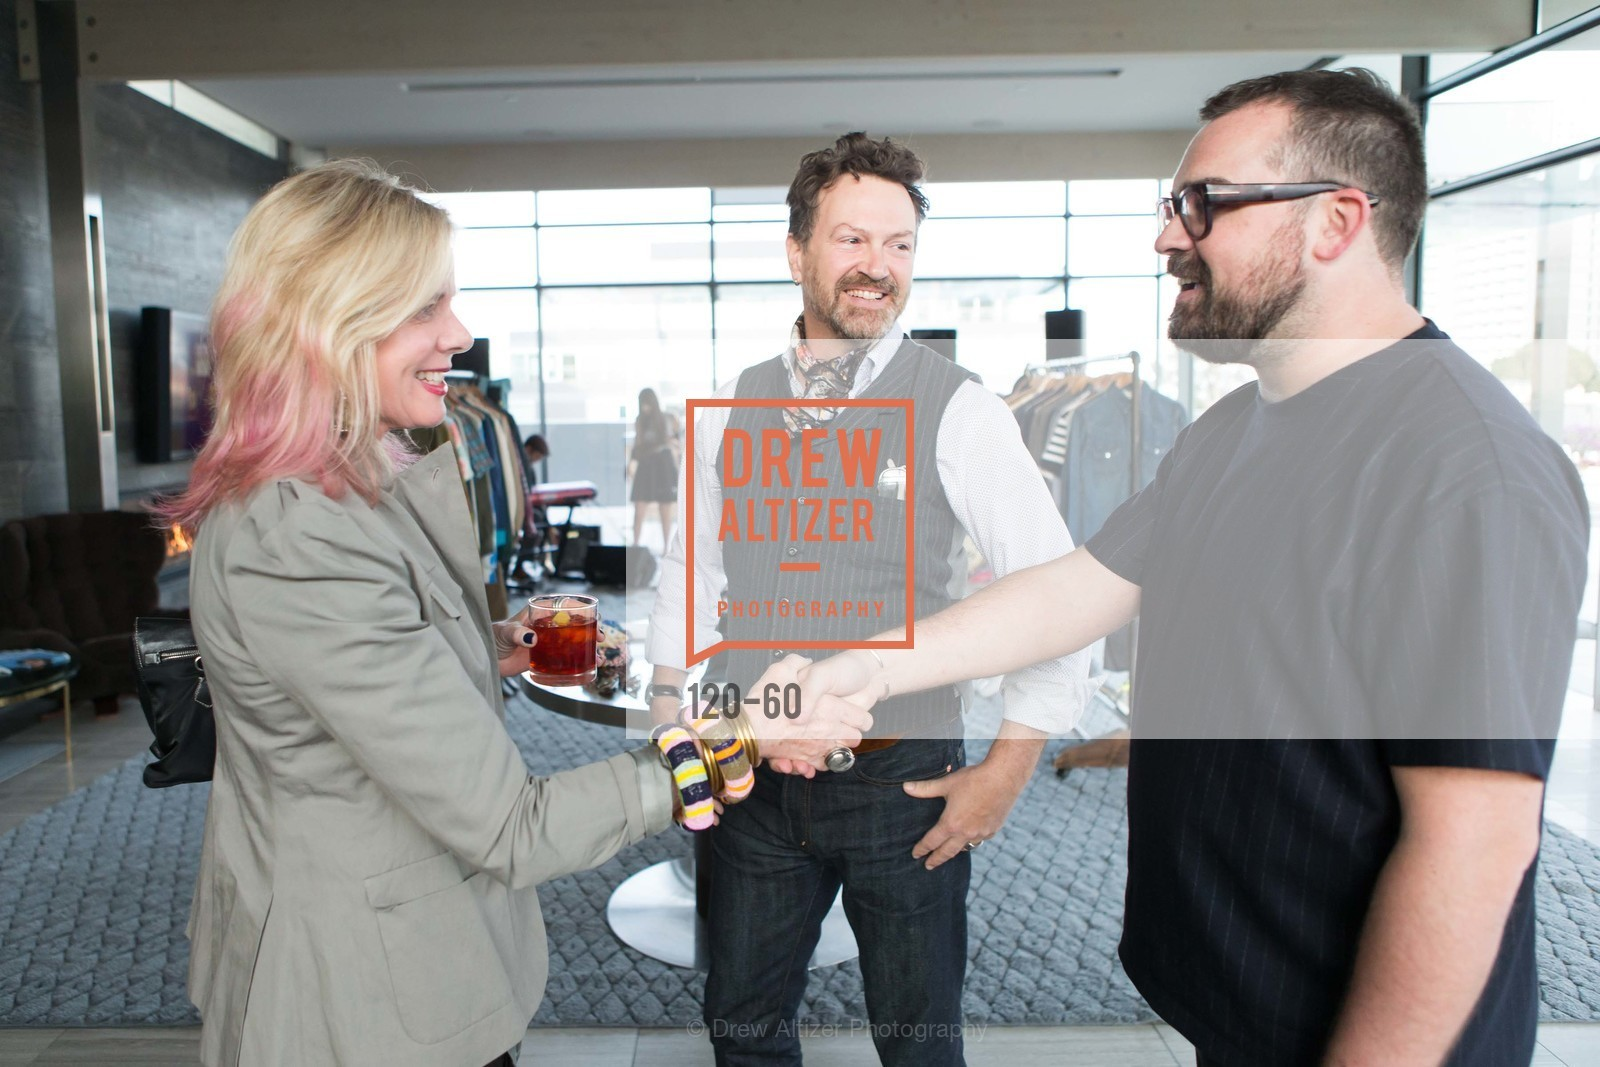 Susan McLaughlin, Paul D'Orleans, Andrew Lord, MR PORTER Celebrate The San Francisco Issue of The Journal, The Battery Rooftop - The Battery SF, April 23rd, 2015,Drew Altizer, Drew Altizer Photography, full-service agency, private events, San Francisco photographer, photographer california